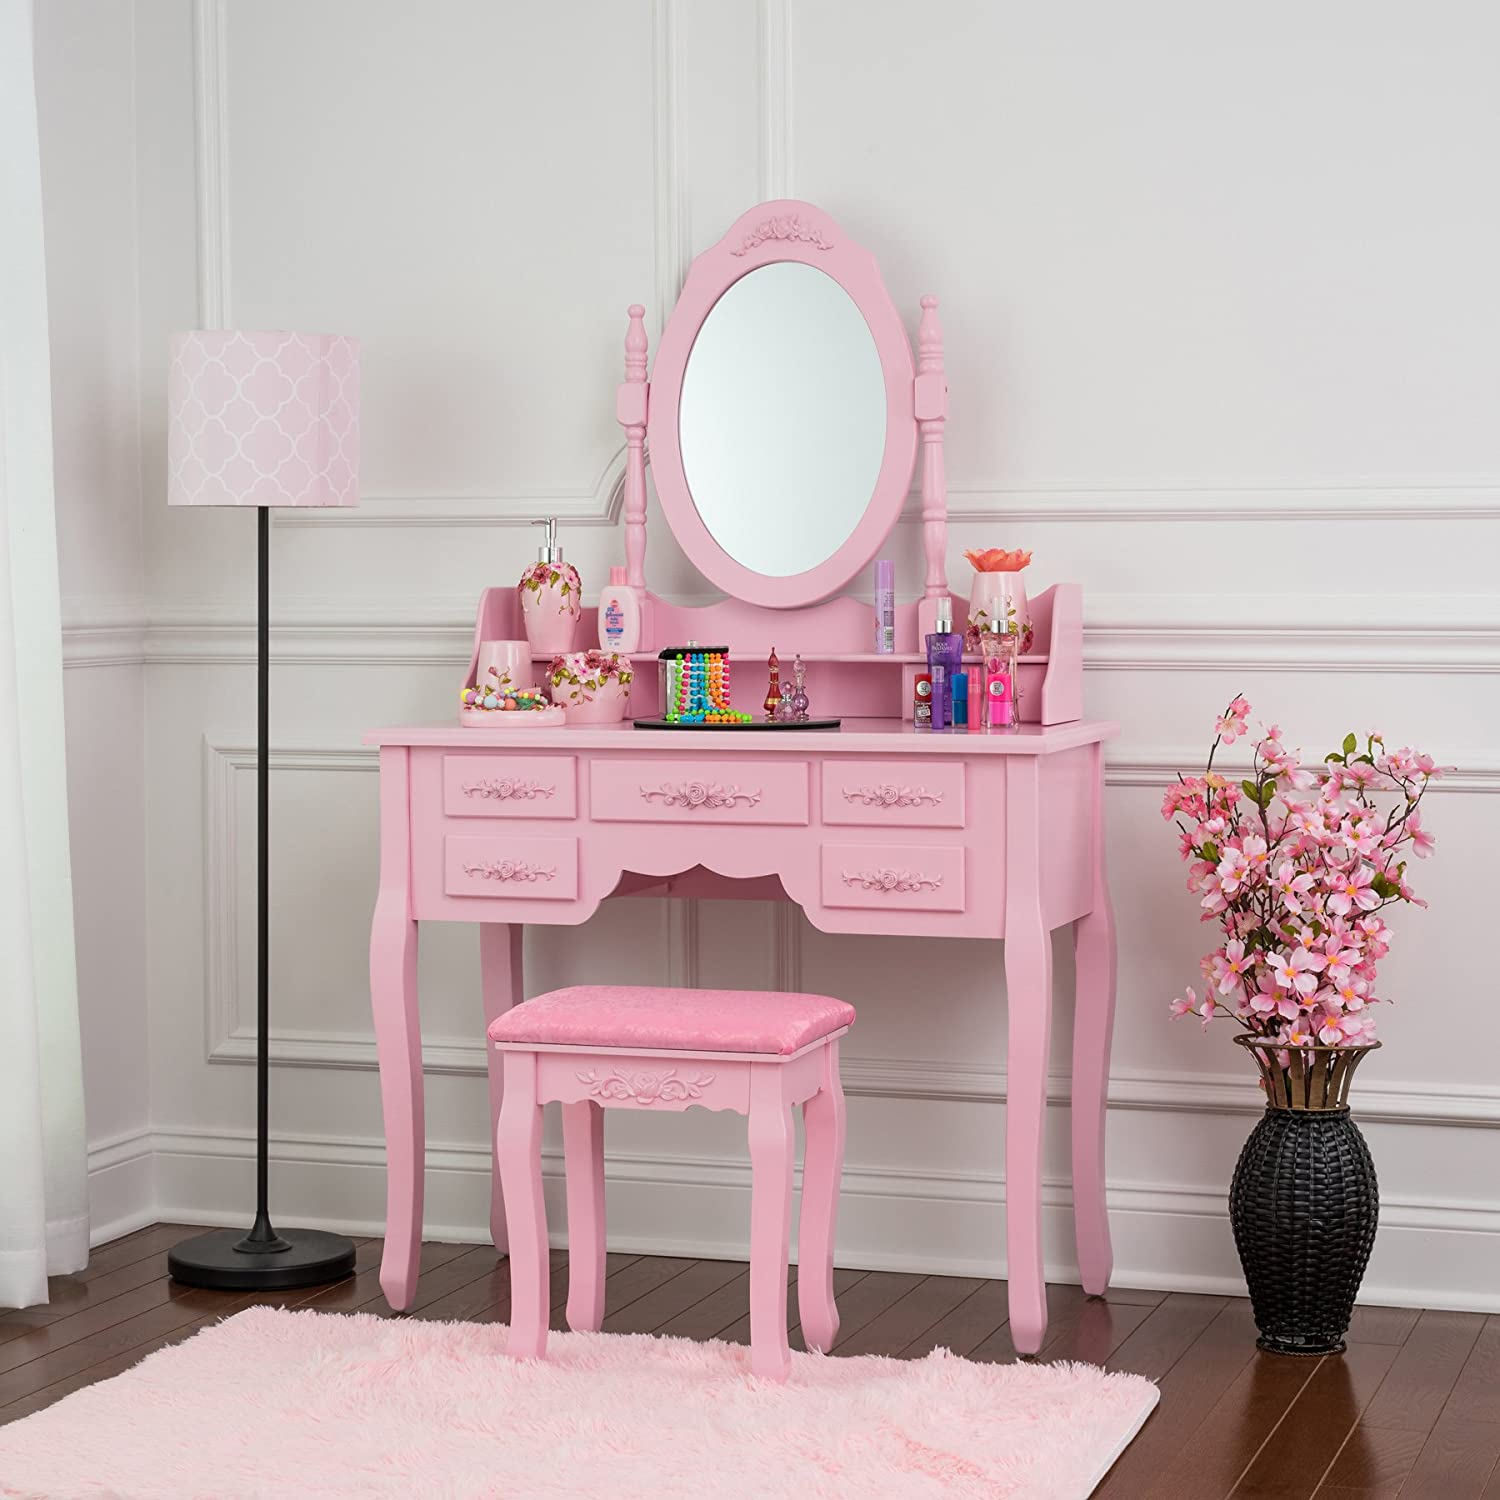 Make up tables for young girls — pic 6